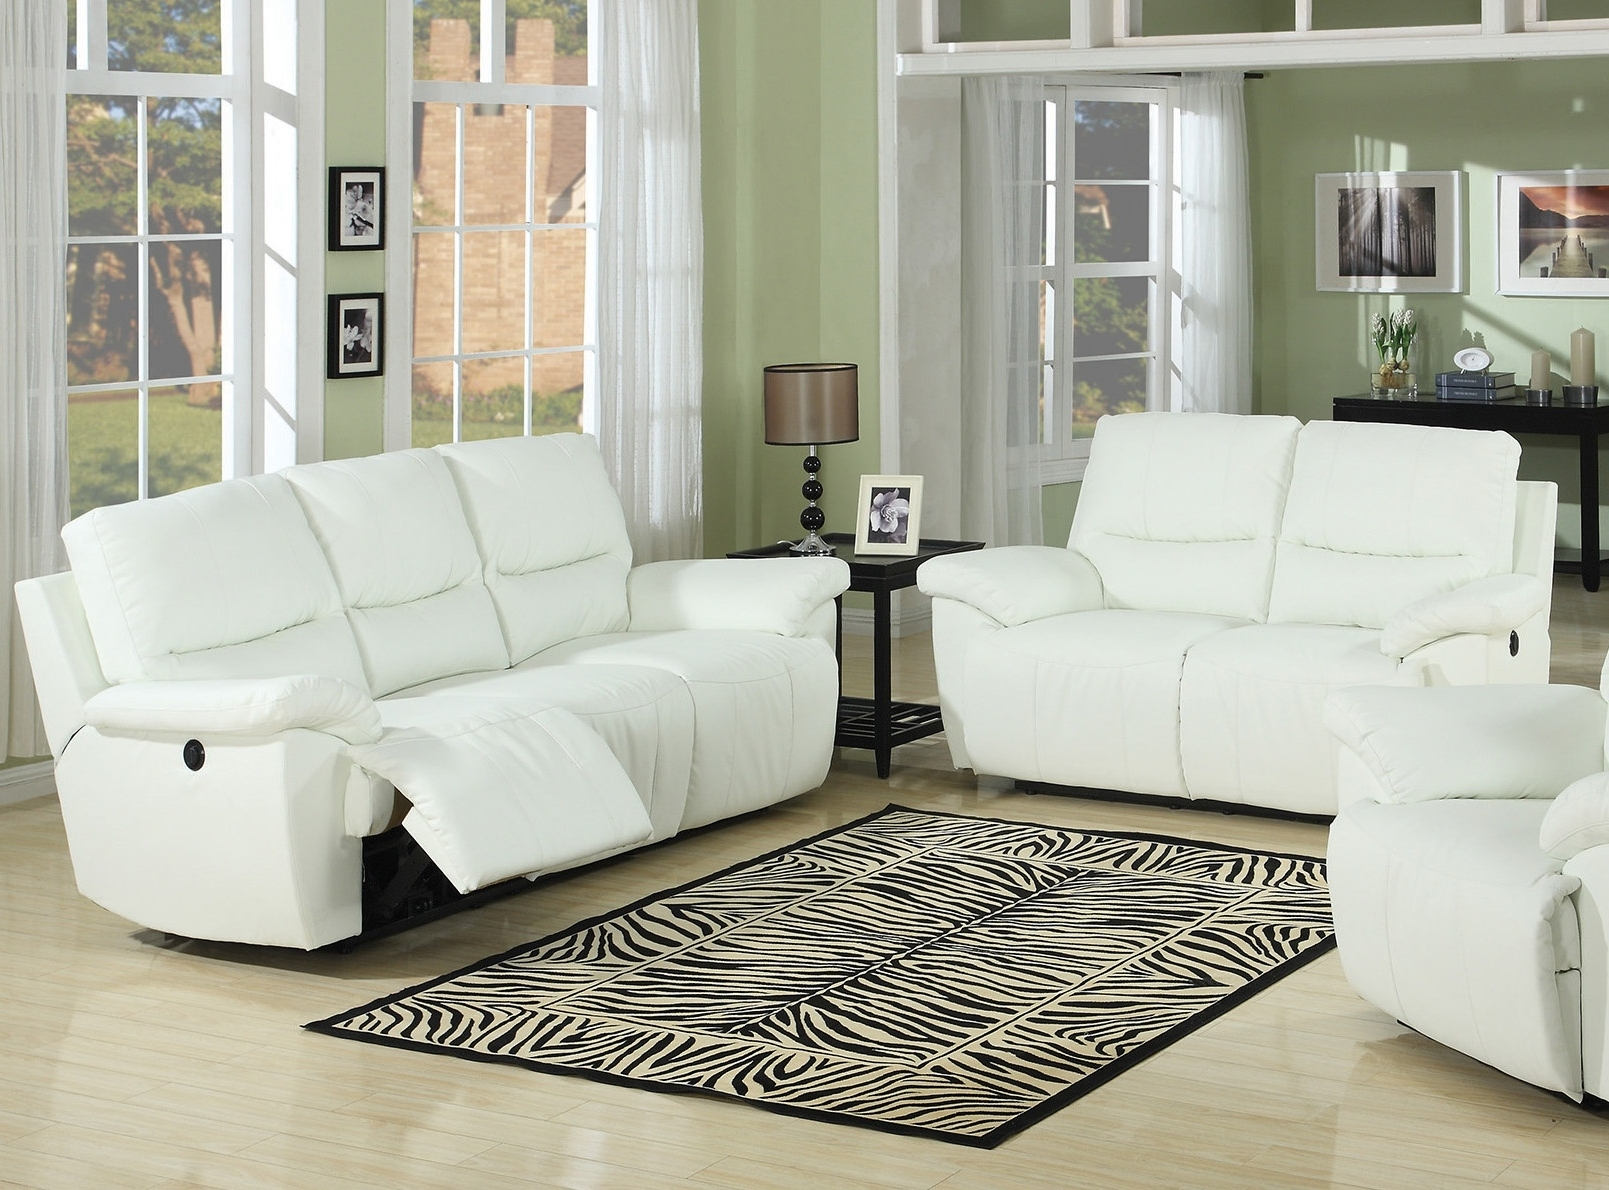 Off White Leather Sofas Throughout Best And Newest White Leather Sofa Sets – Home Design Ideas And Pictures (View 16 of 20)